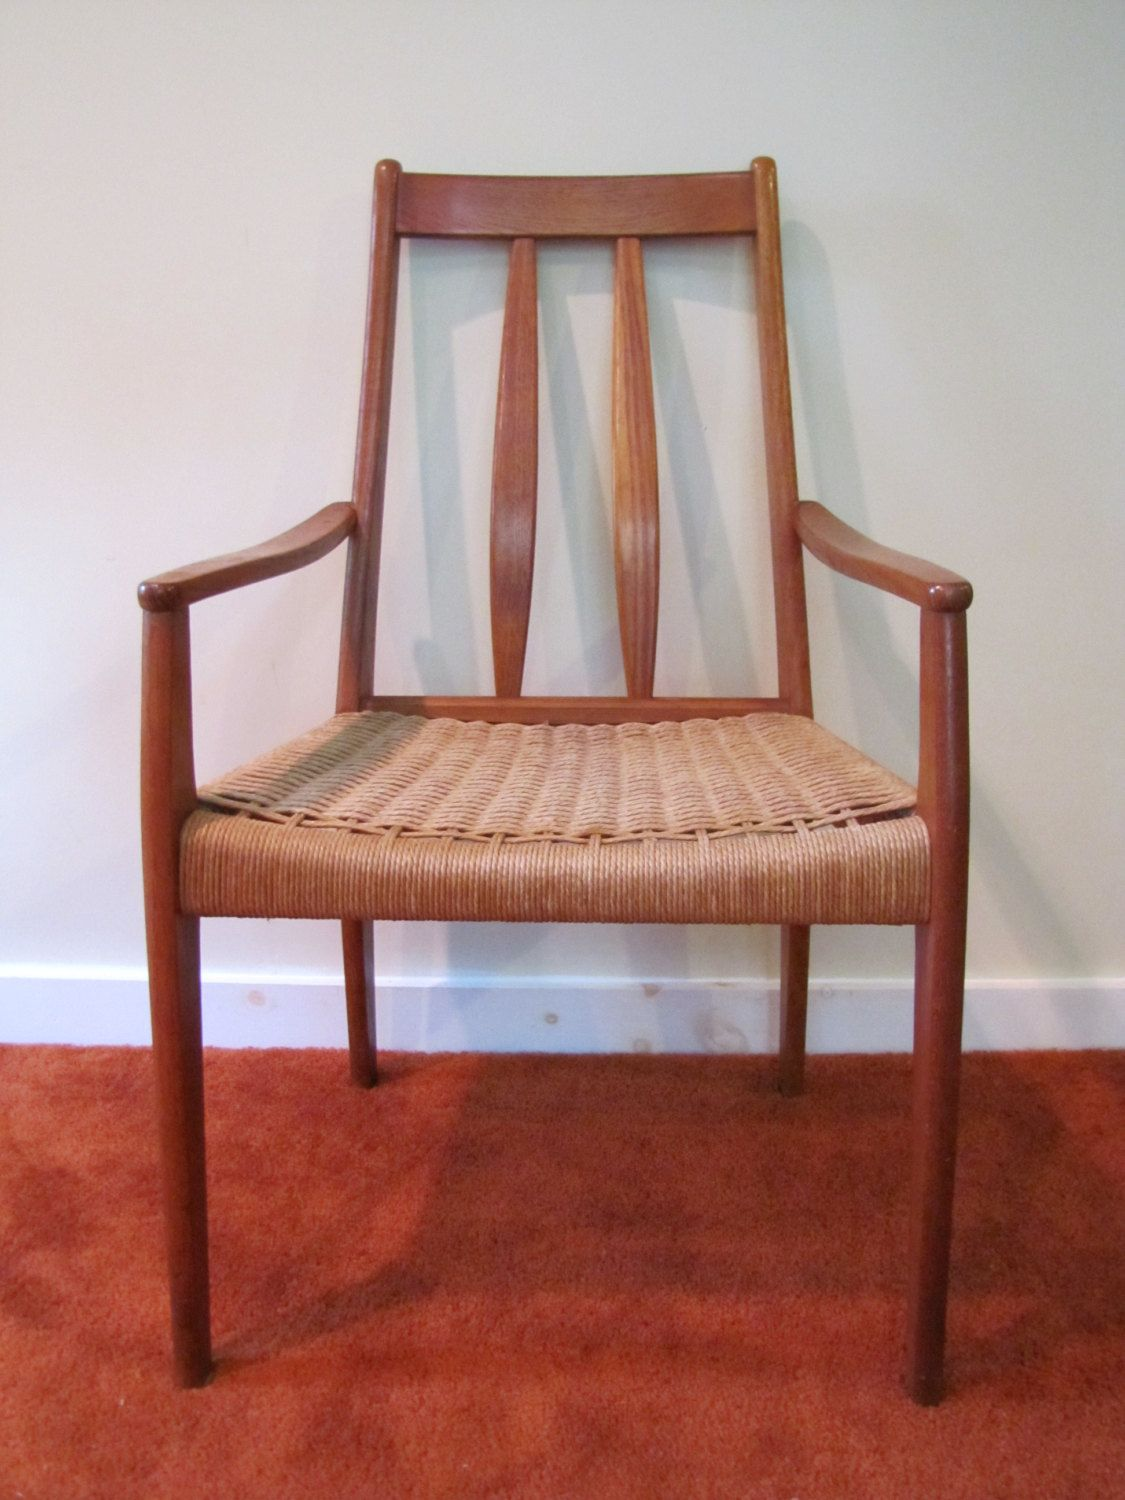 Danish Modern Style Rope Chair Mid Century Arm Woven Seat Side Dining Room Captains